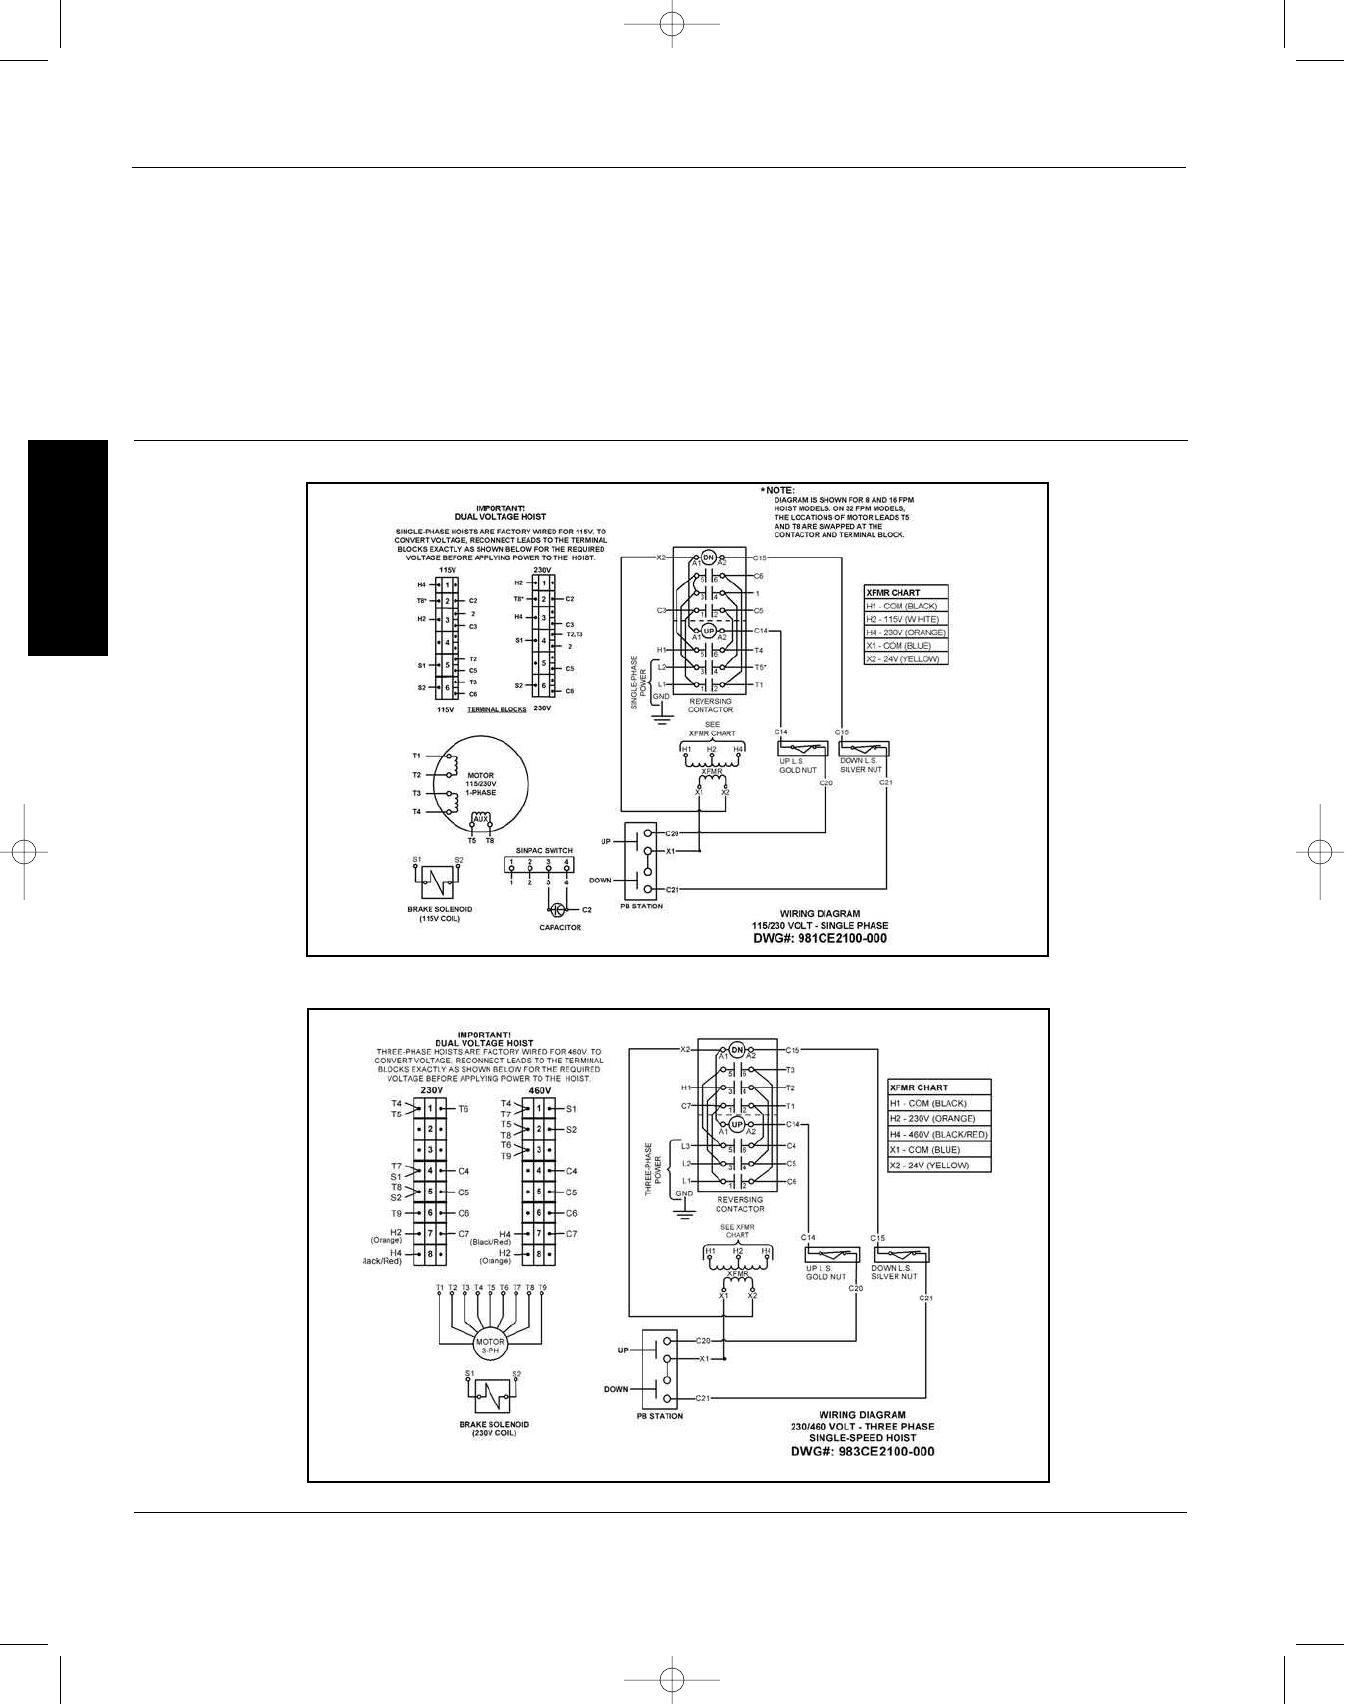 Cm Shopstar Wiring Diagram Wiring Library